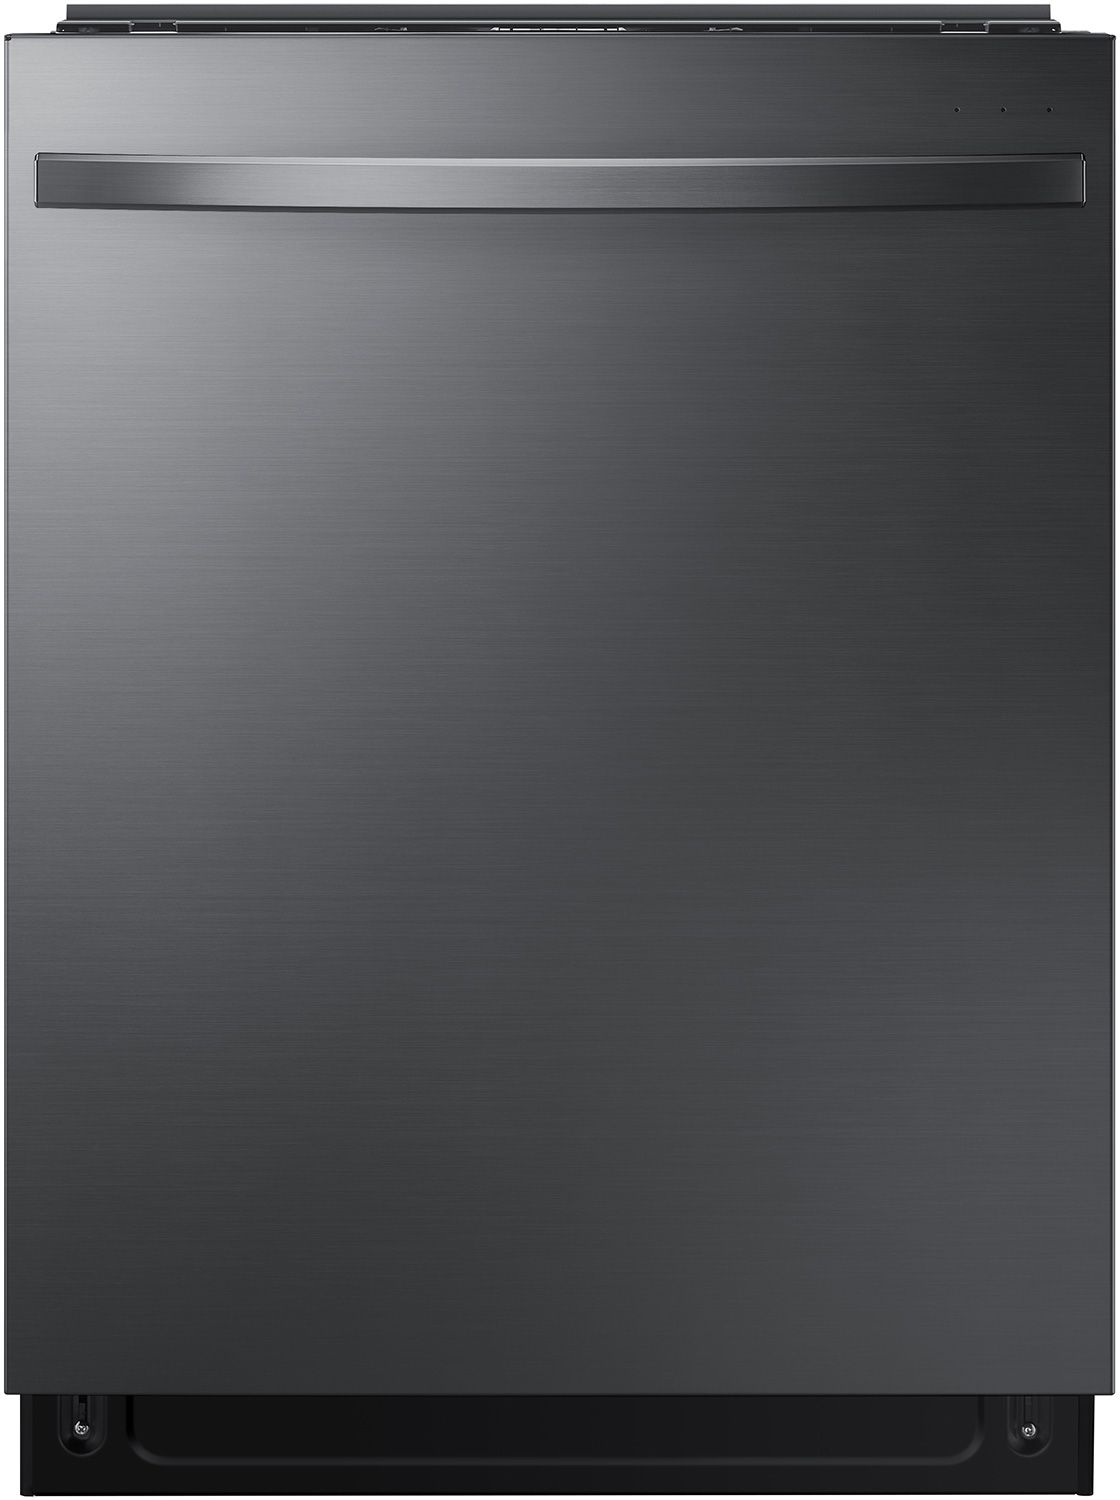 Samsung 24 Fingerprint Resistant Black Stainless Steel Built In Dishwasher Dw80r7061ug Aa Built In Dishwasher Black Stainless Steel Steel Tub